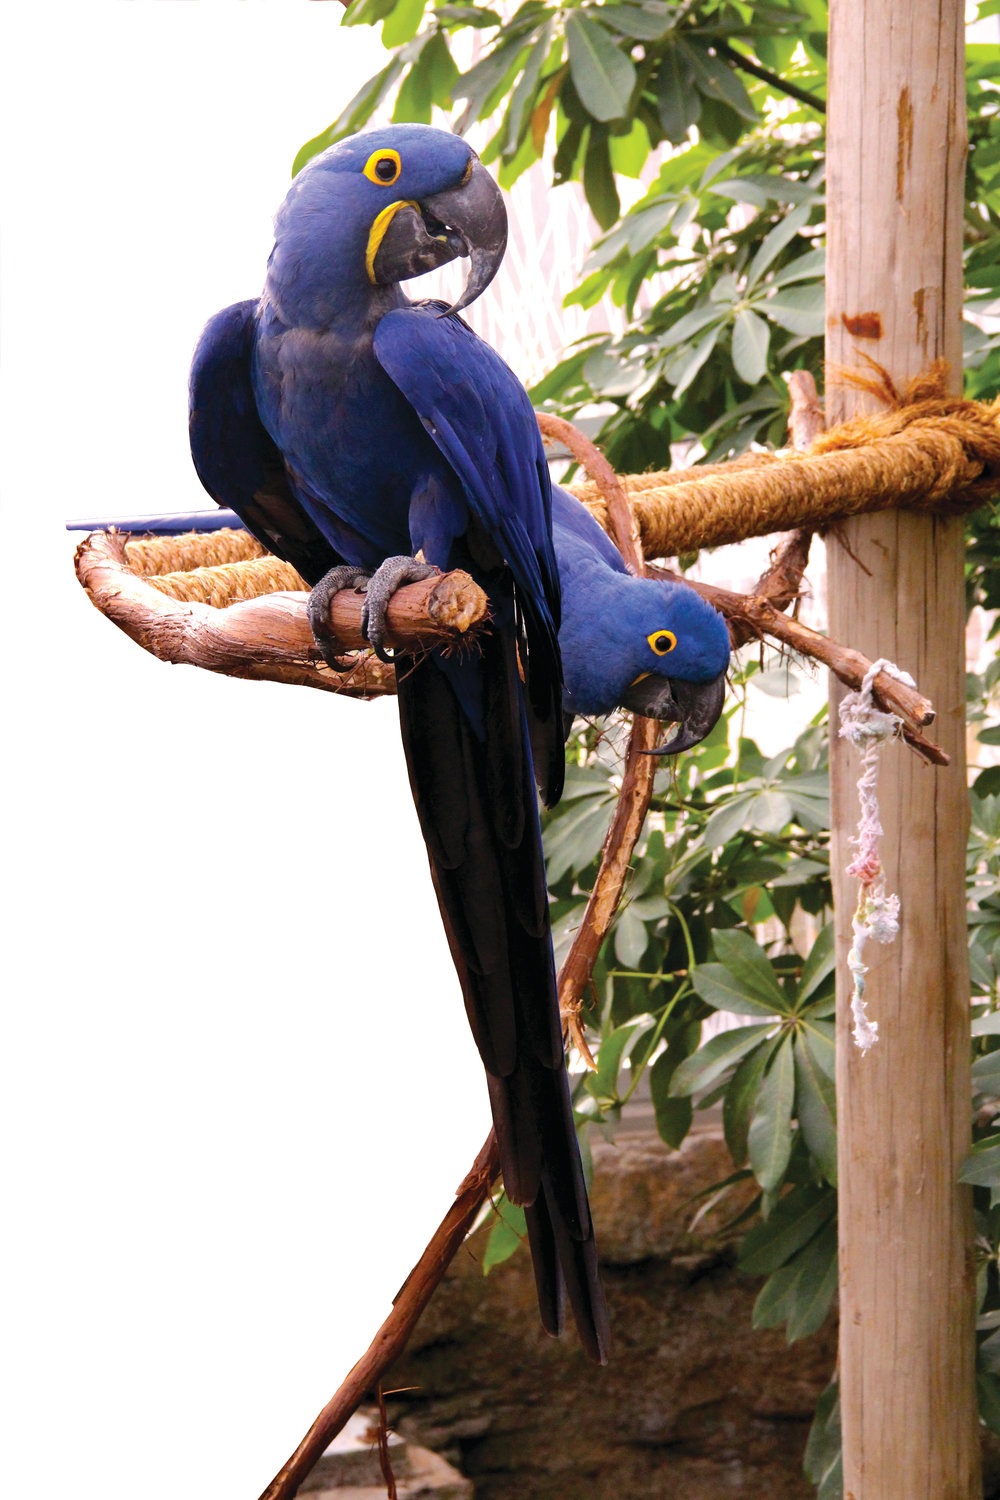 ALL SORTS OF NEW FRIENDS: The hyacinth macaws always take an interest in rain forest visitors, as do the monkeys and the river otters.